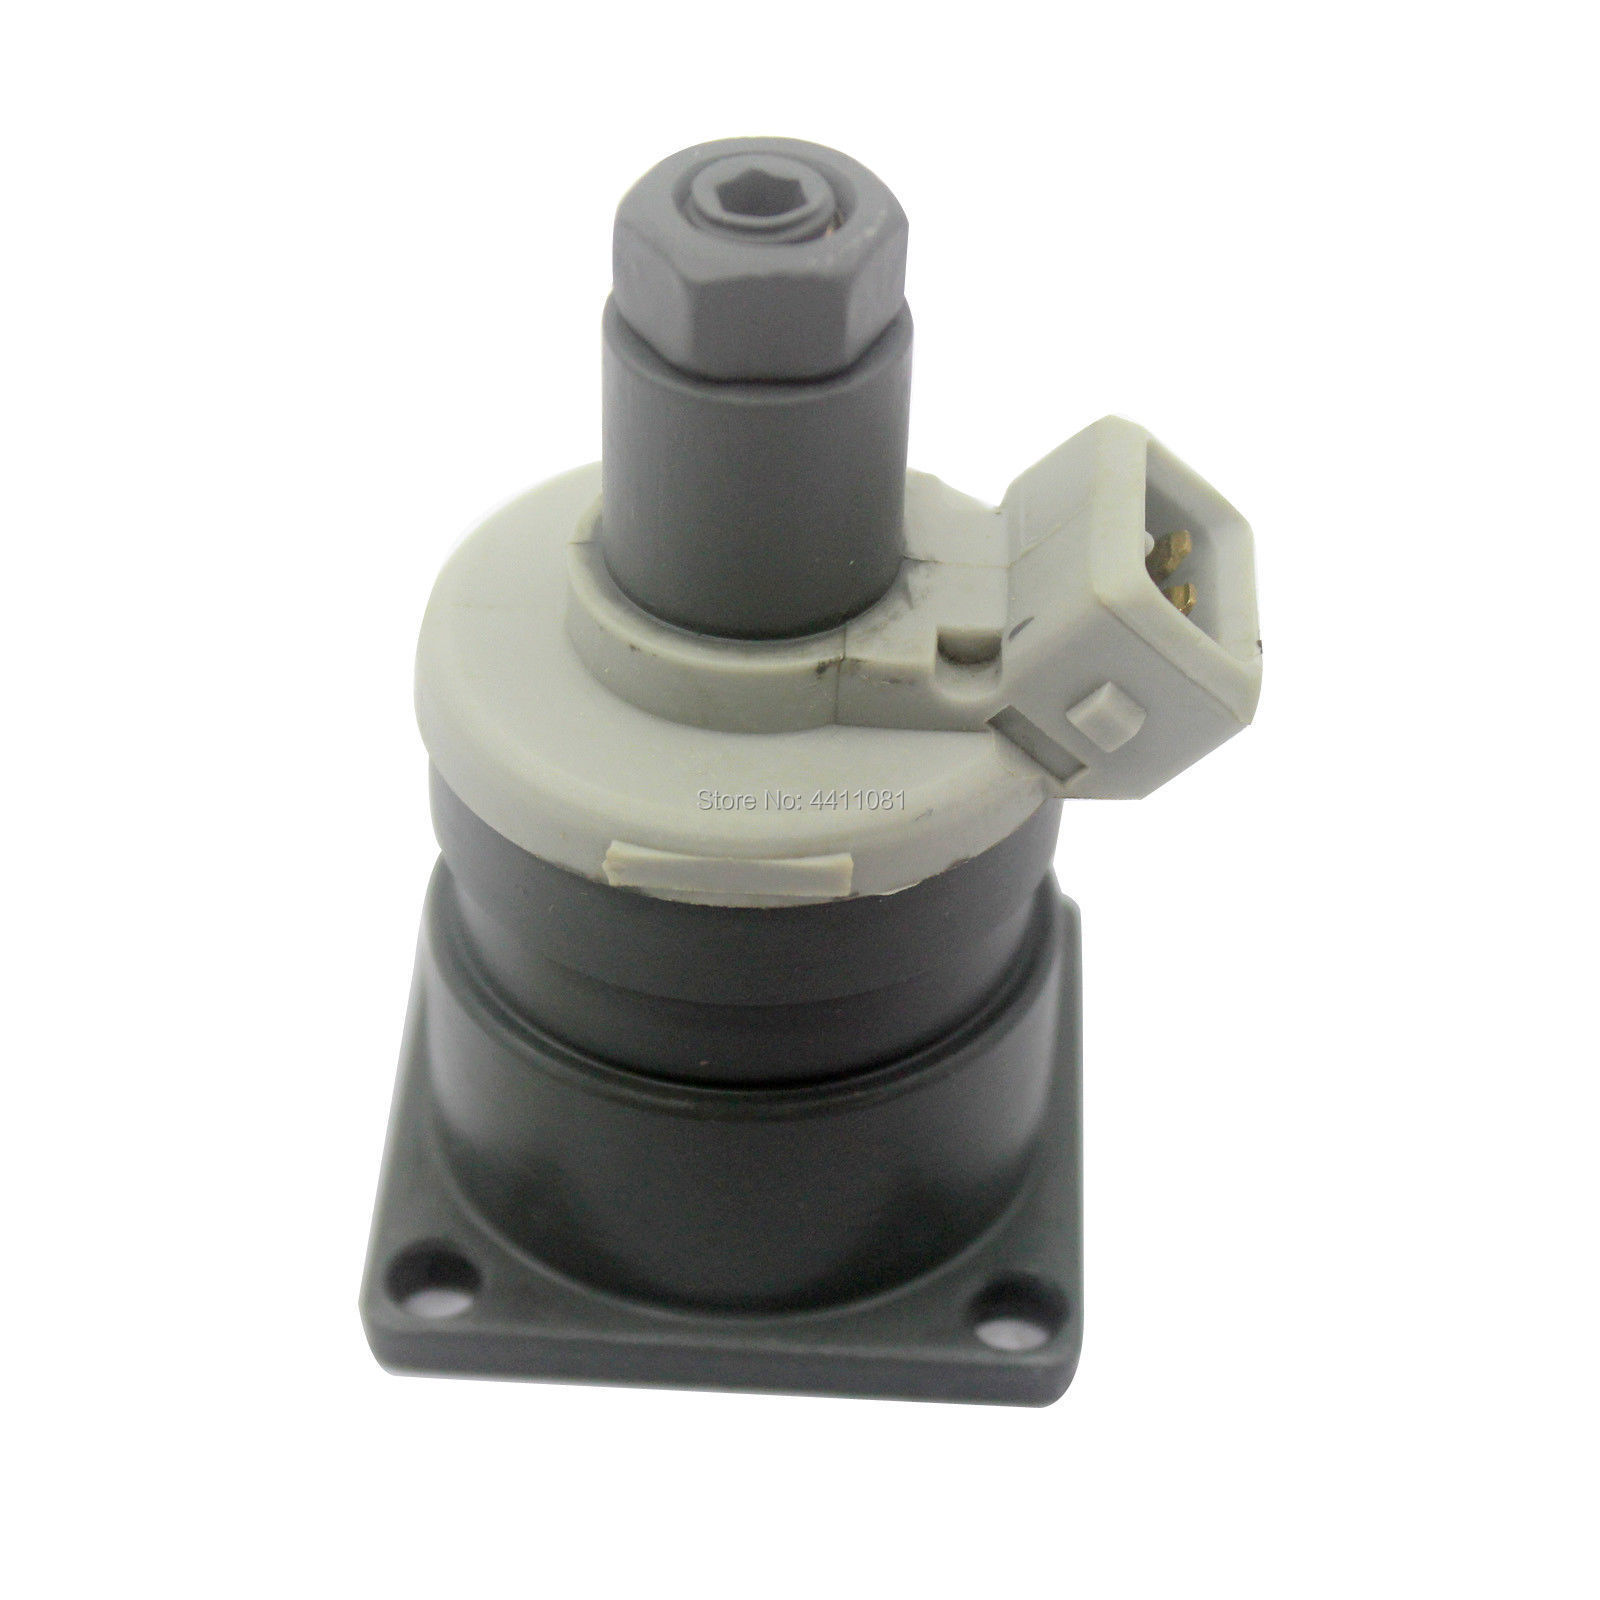 ZX200-3 ZX350-3 Proportional Solenoid Valve 9218235 for Hitachi Excavator with 4pins Square plug, 3 months warrantyZX200-3 ZX350-3 Proportional Solenoid Valve 9218235 for Hitachi Excavator with 4pins Square plug, 3 months warranty